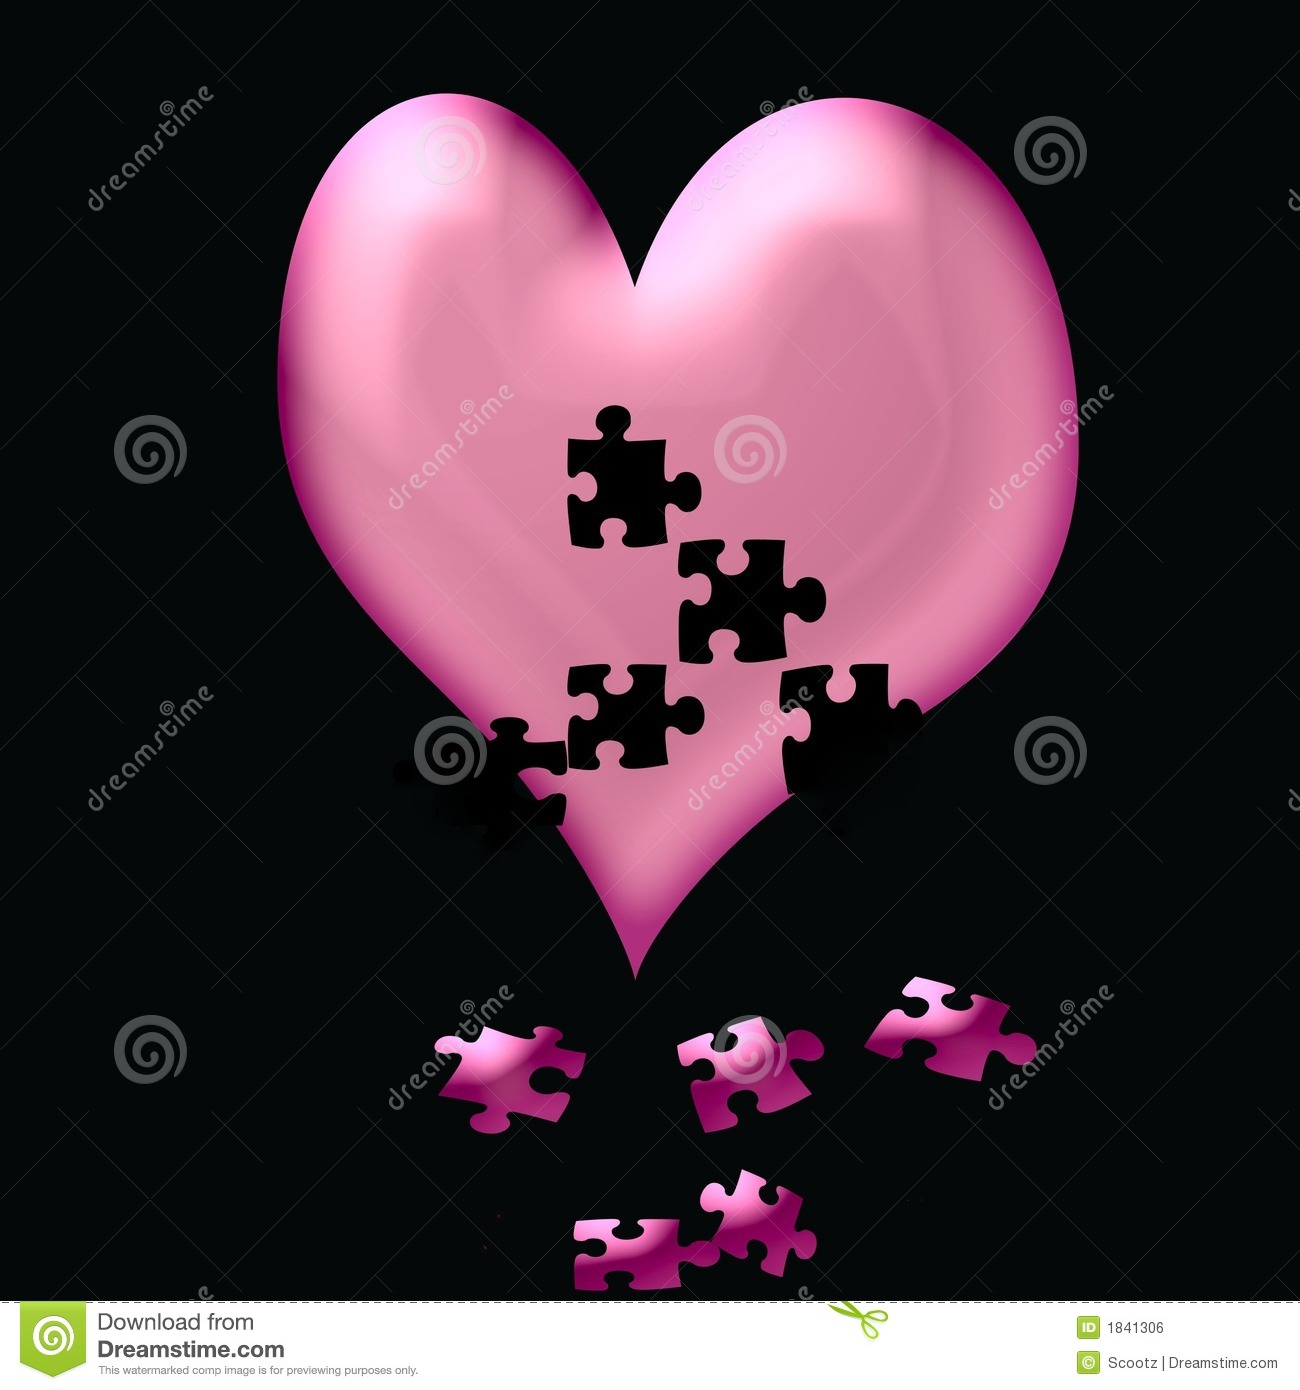 Heart Fall To Pieces Royalty Free Stock Image